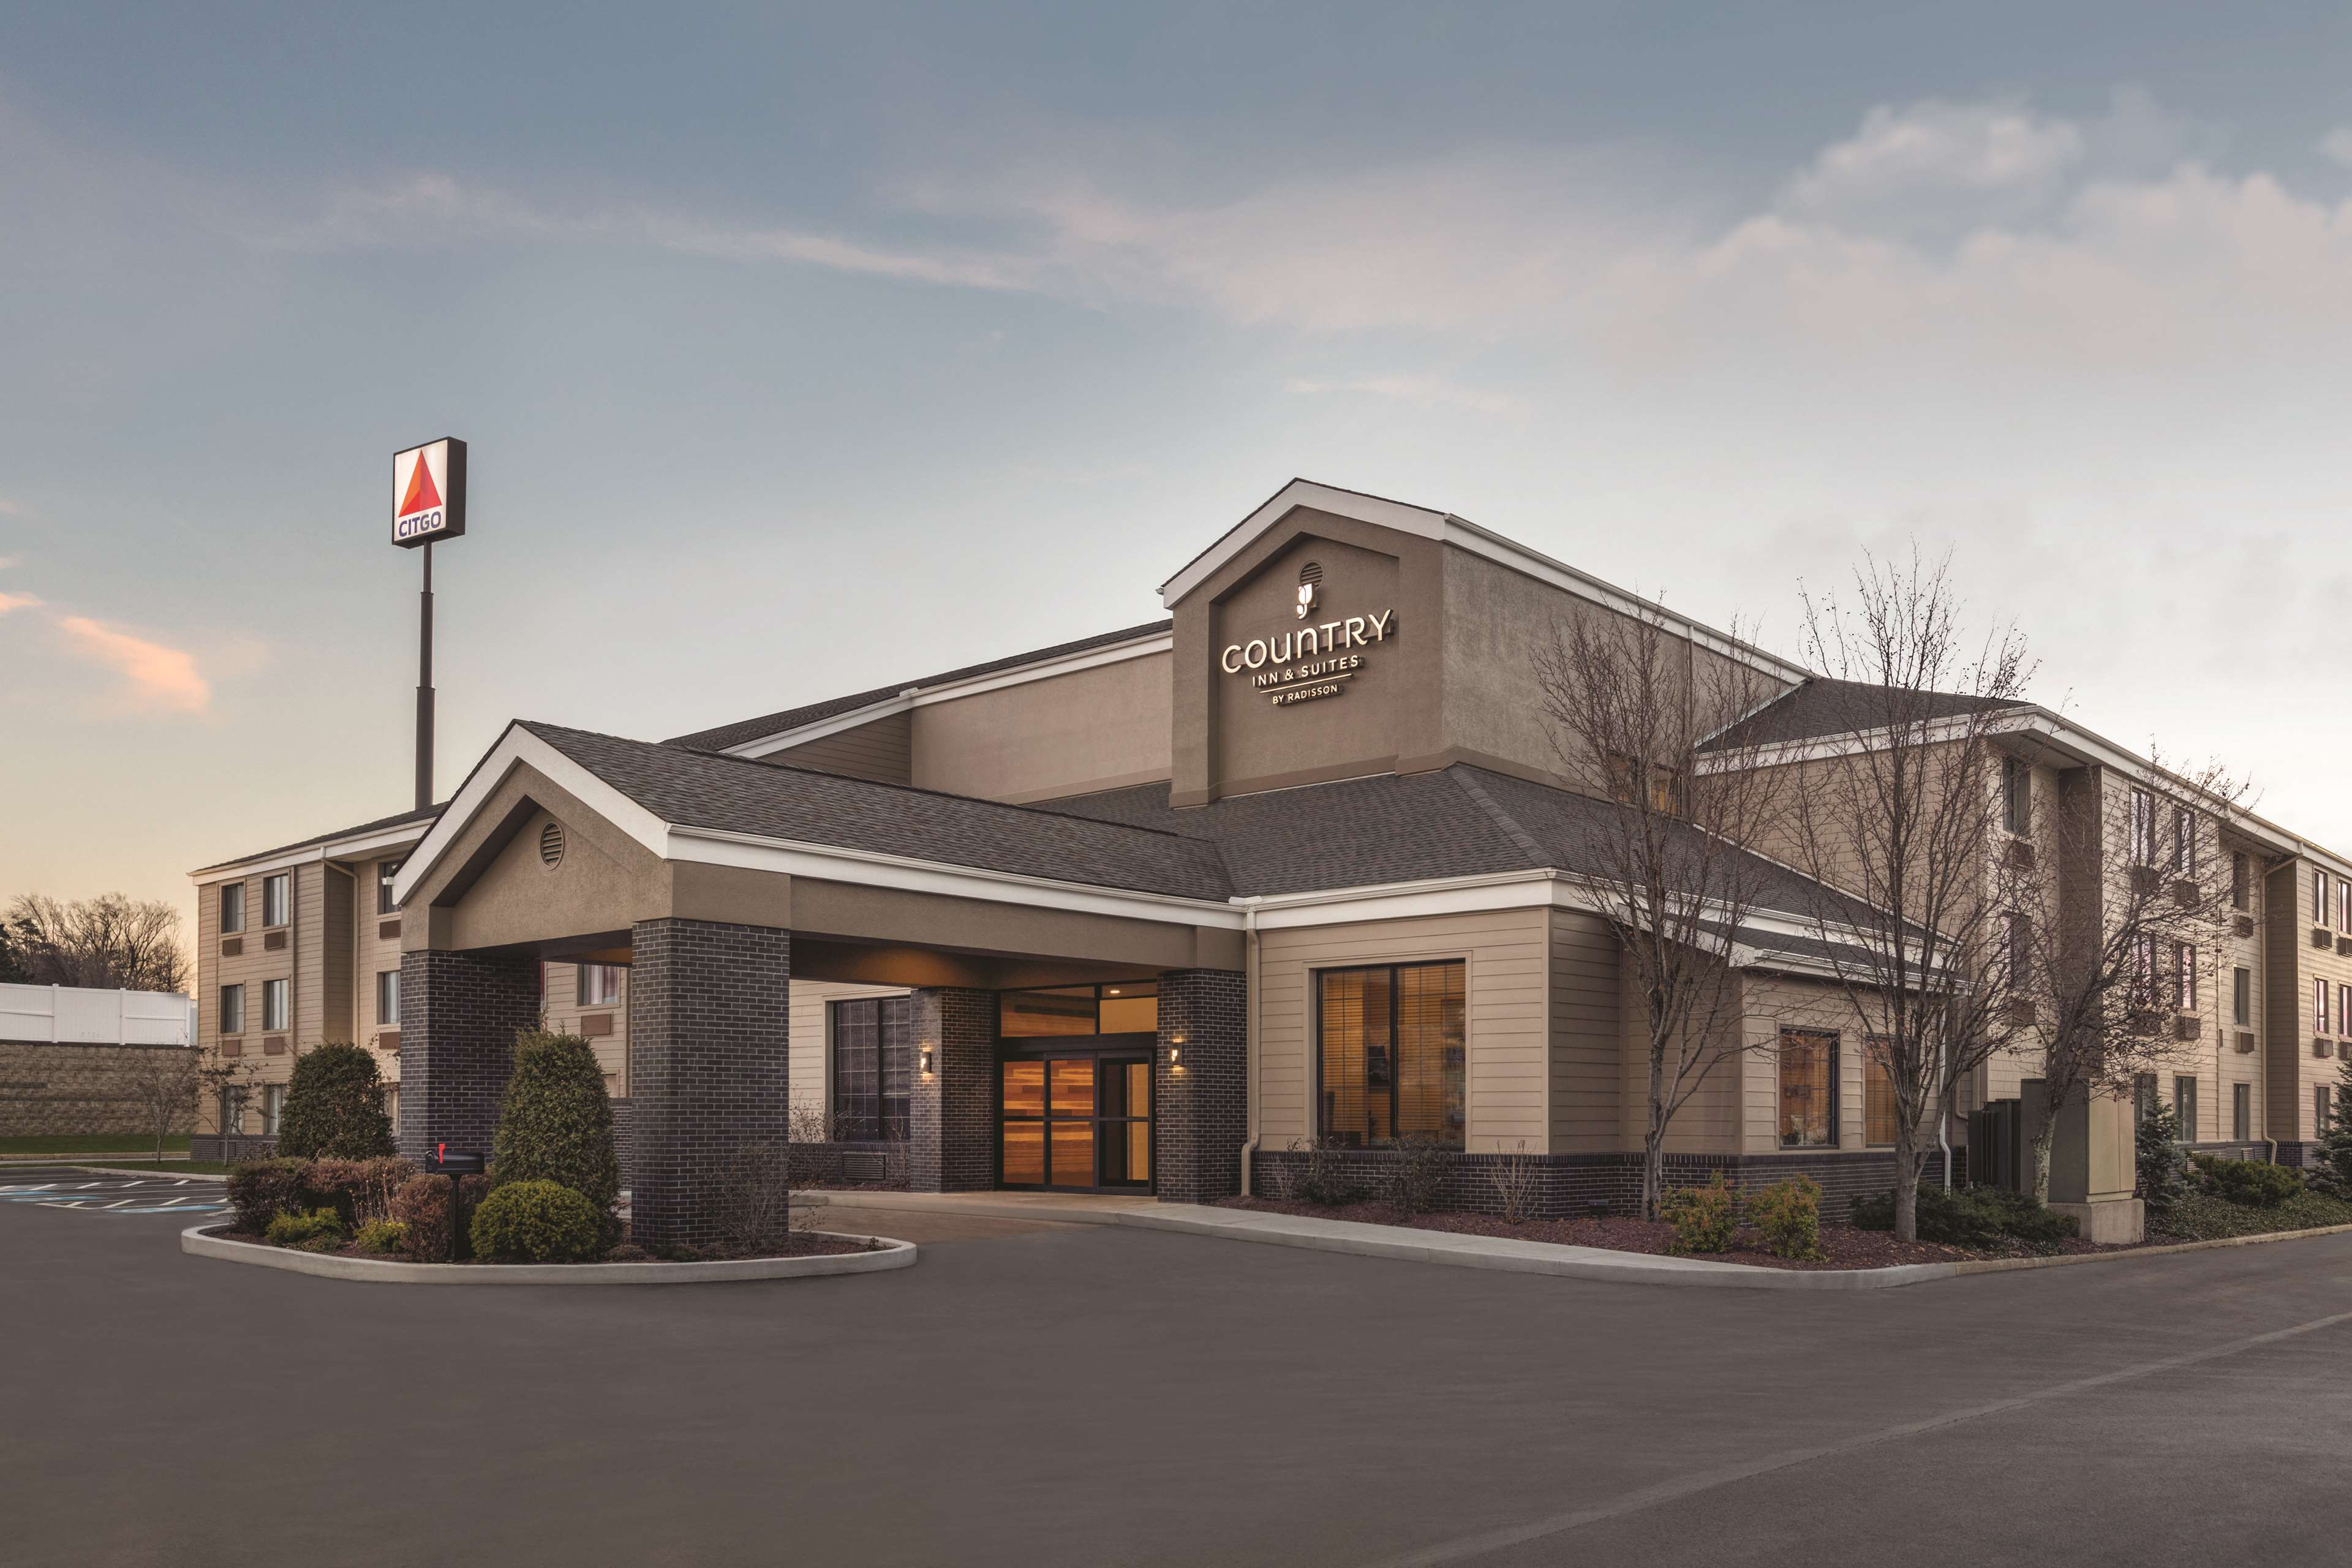 Country Inn & Suites by Radisson, Erie, PA